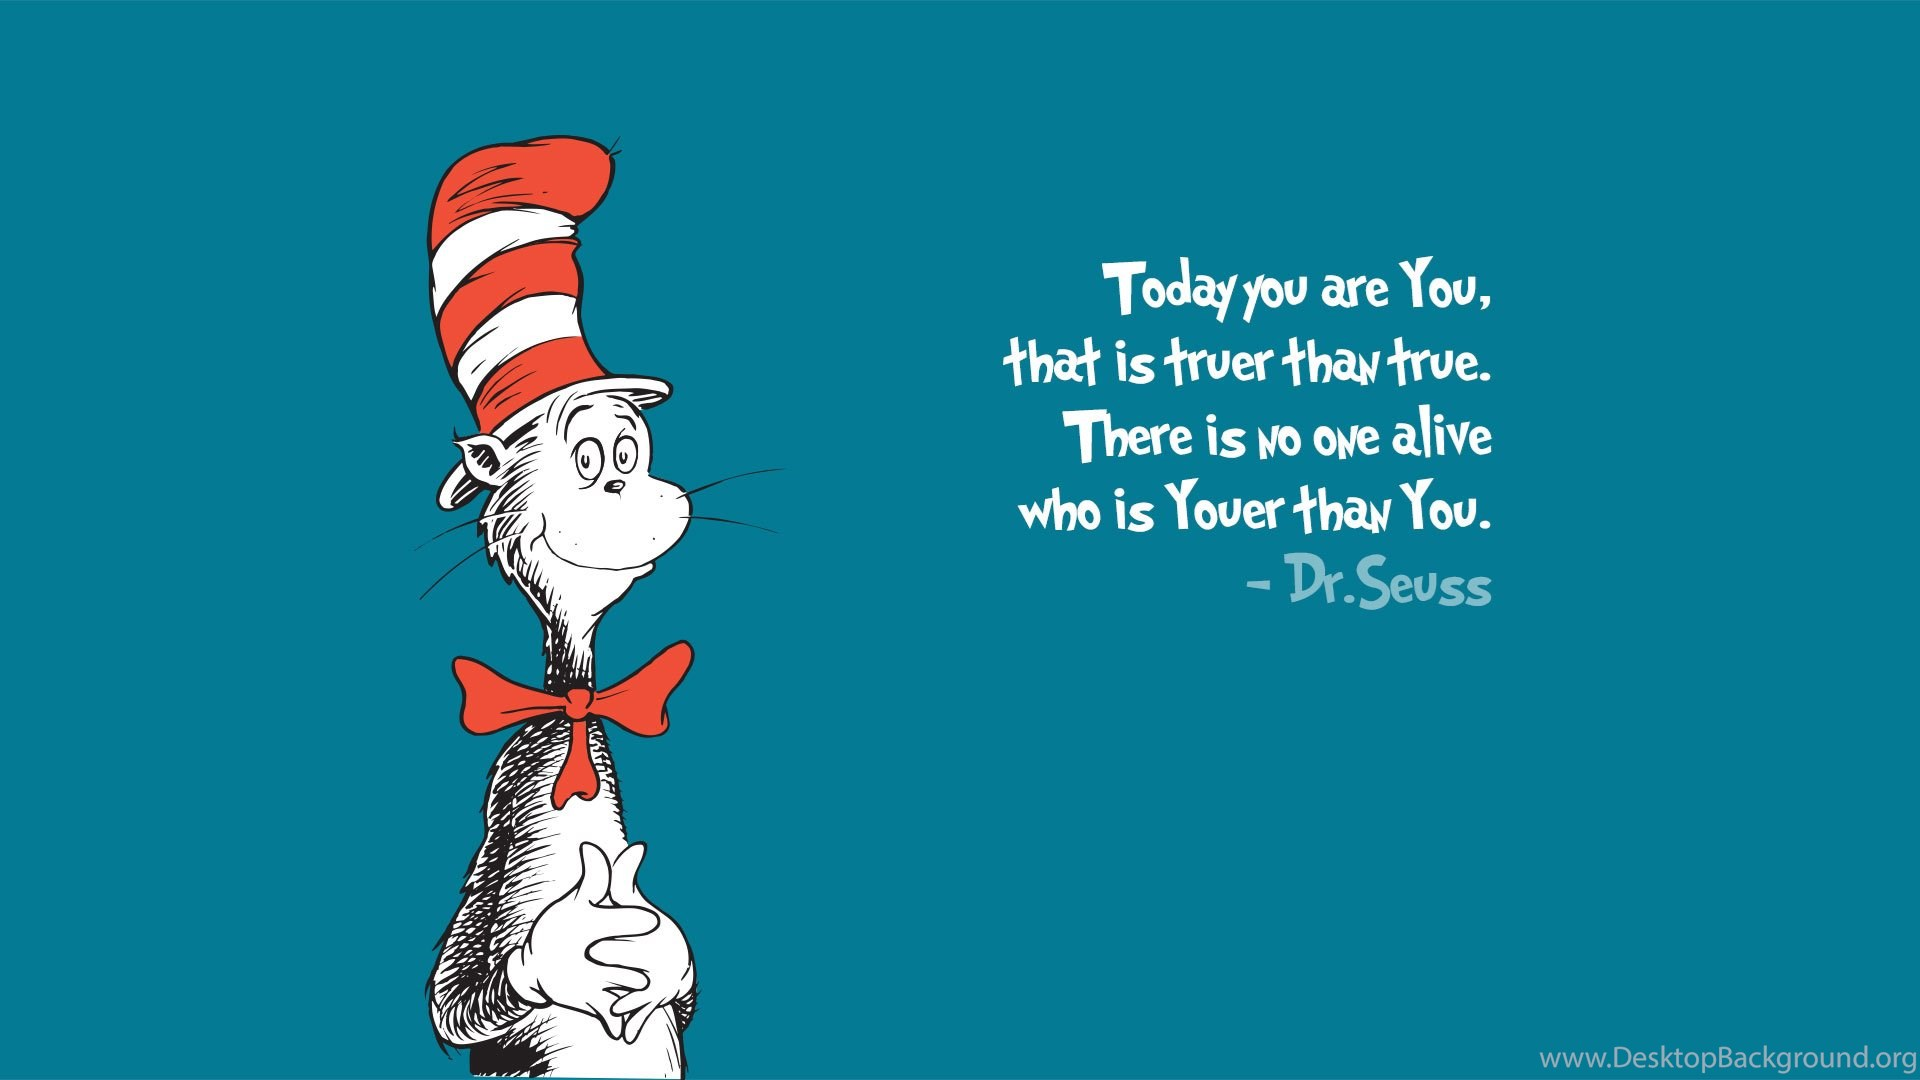 Good Wallpaper High Resolution Quote - 996689_high-resolution-cartoon-dr-seuss-quotes-wallpapers-hd-1-full-size_1920x1080_h  HD_715443.jpg